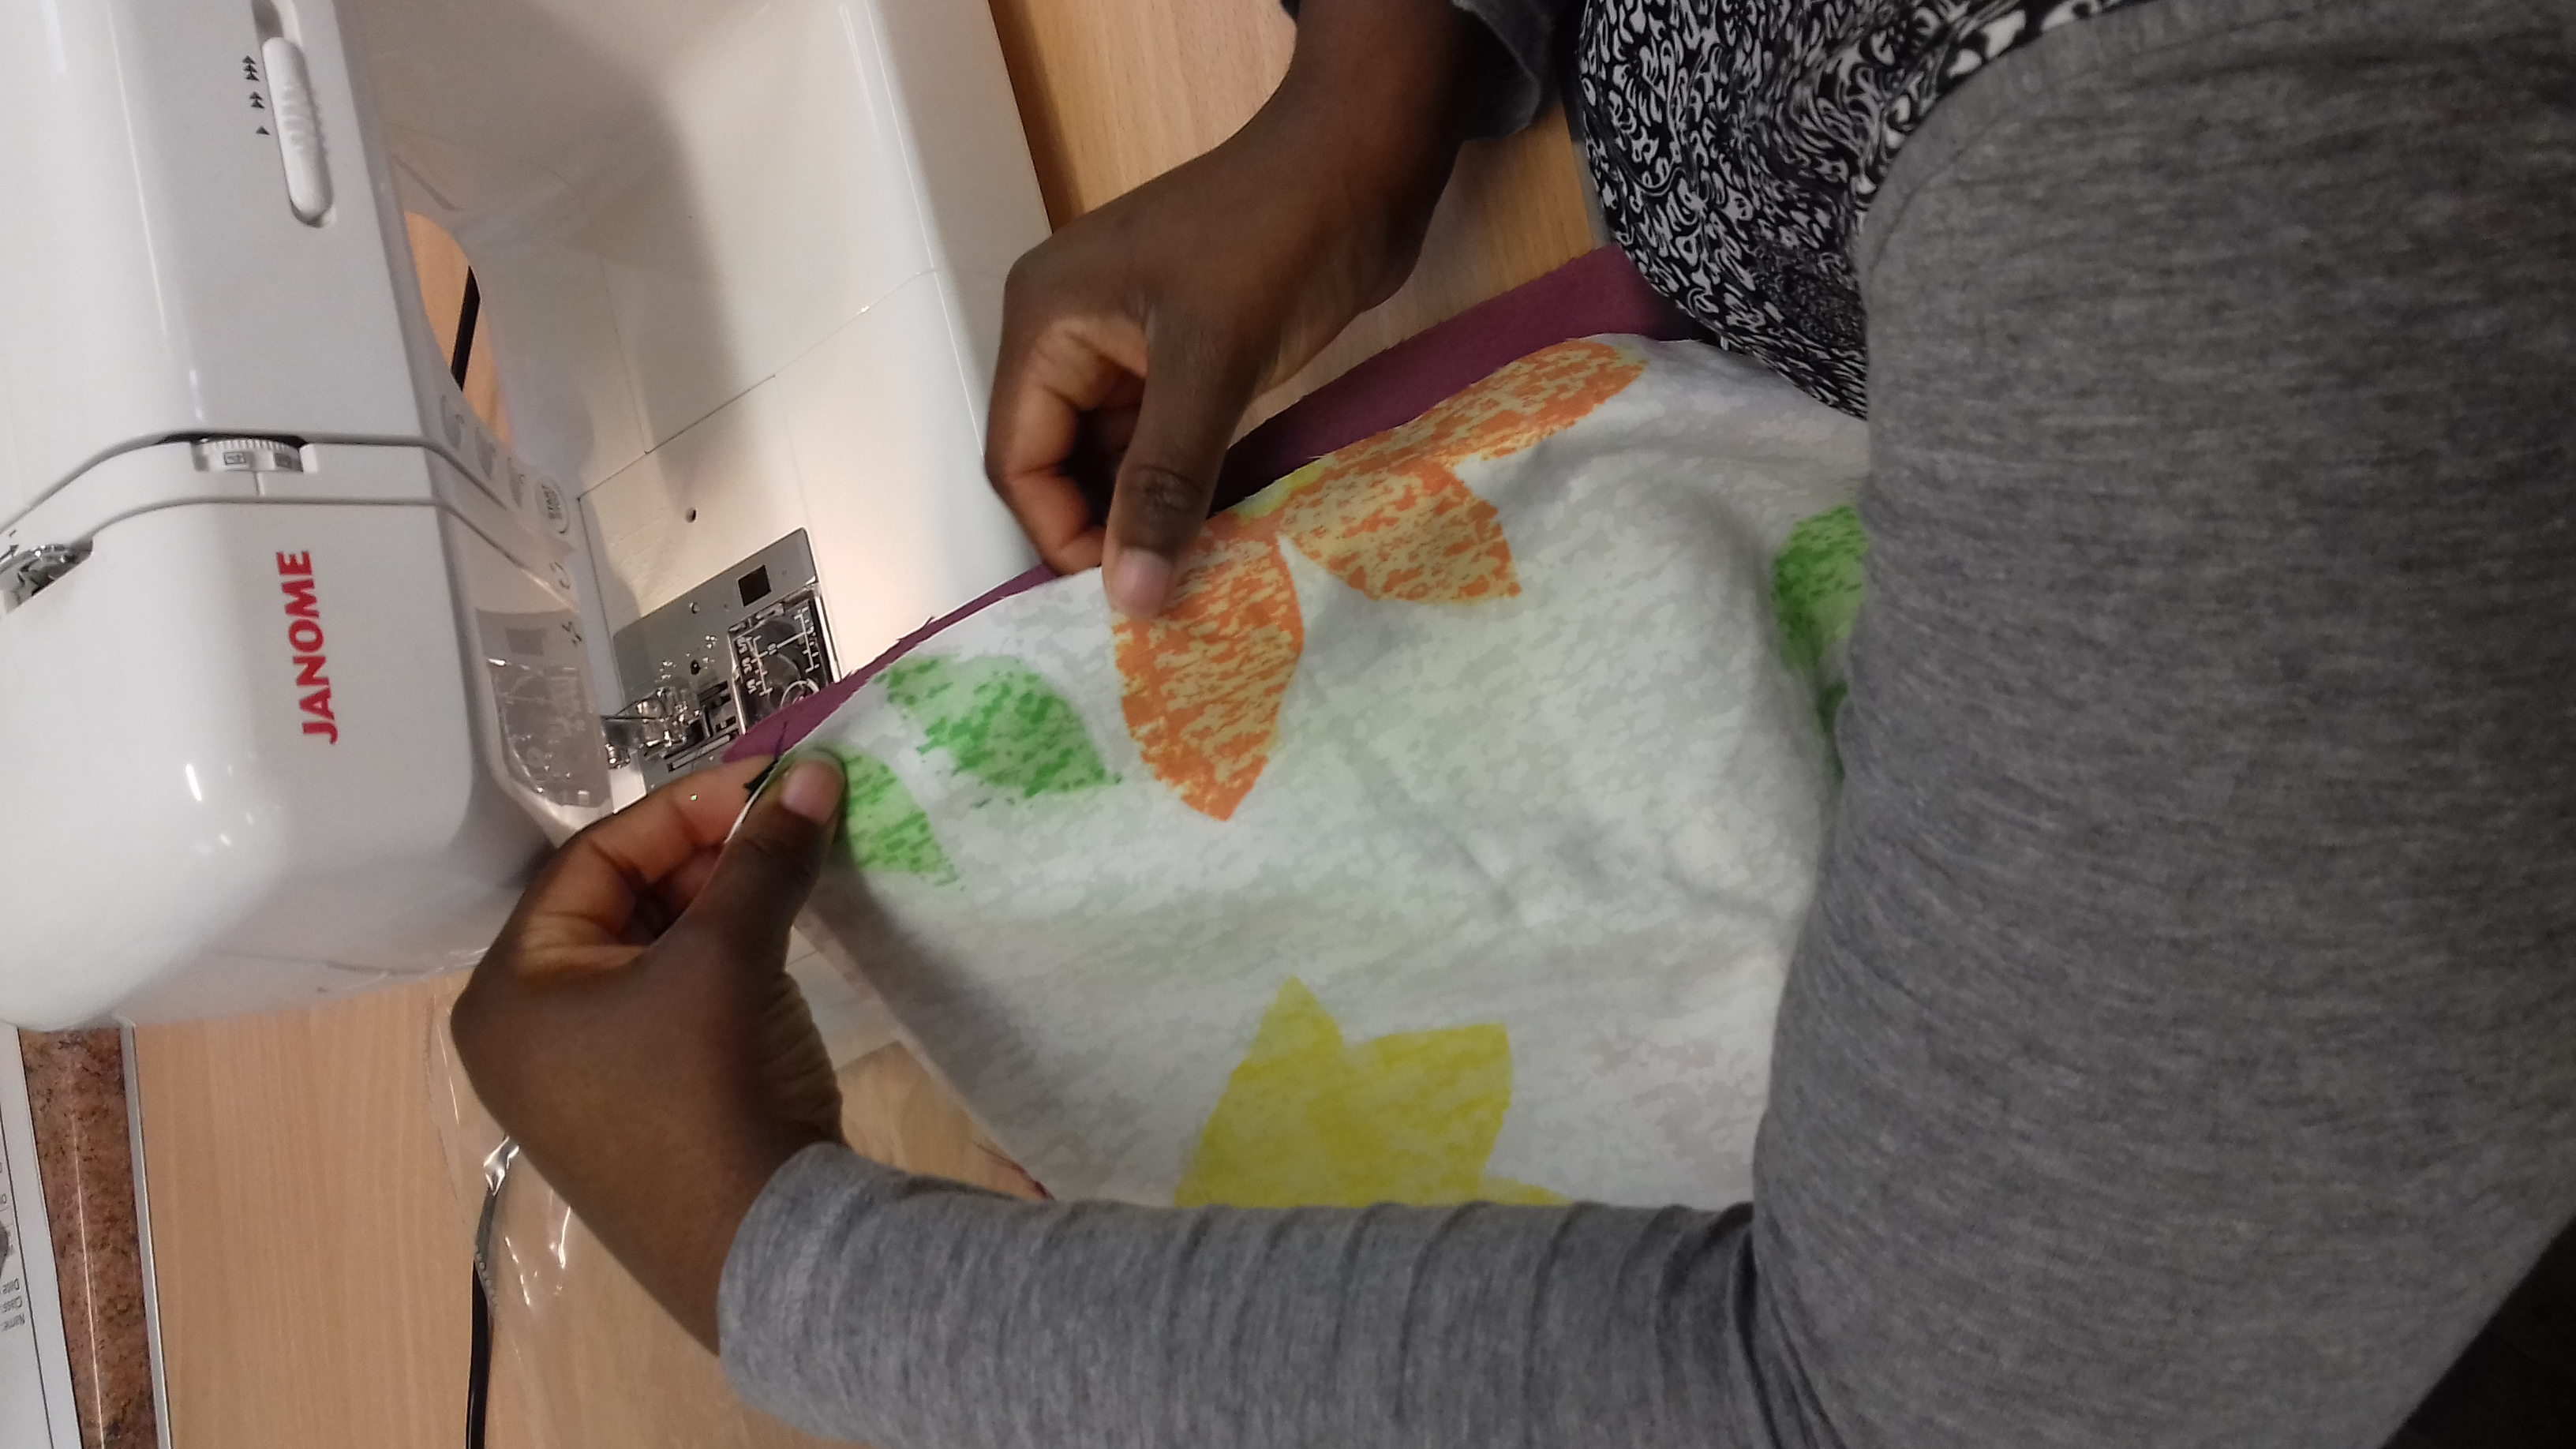 building confidence with sewing